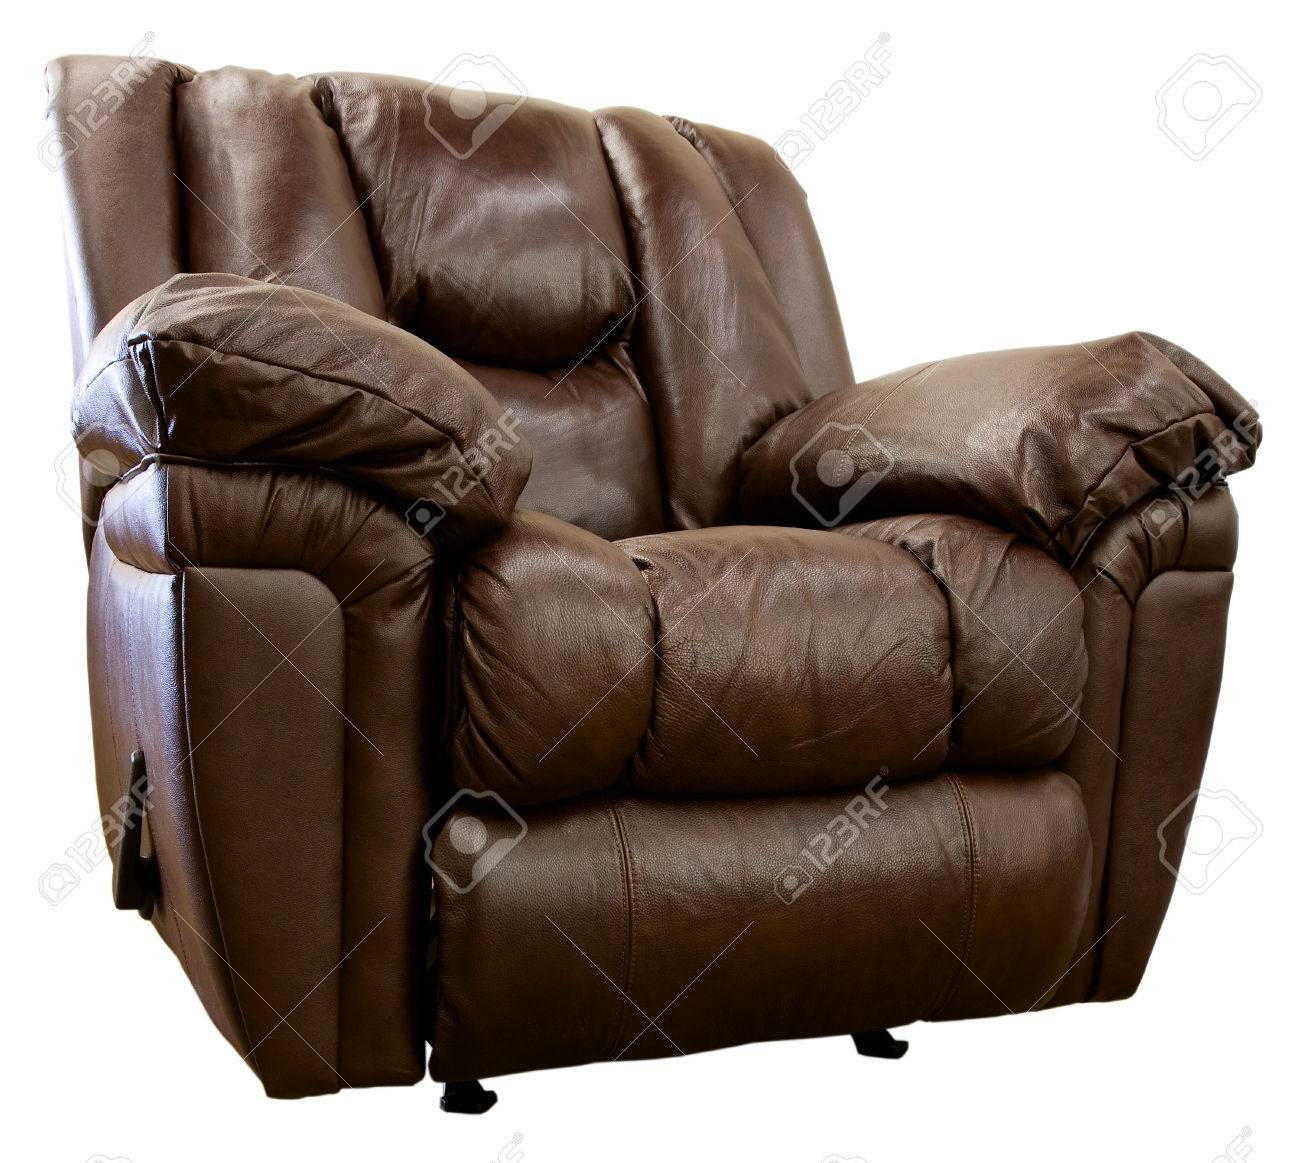 Large Comfortable Overstuffed Brown Leather Rocker Recliner Stock Photo - 1498640  sc 1 st  123RF Stock Photos & Large Comfortable Overstuffed Brown Leather Rocker Recliner Stock ... islam-shia.org